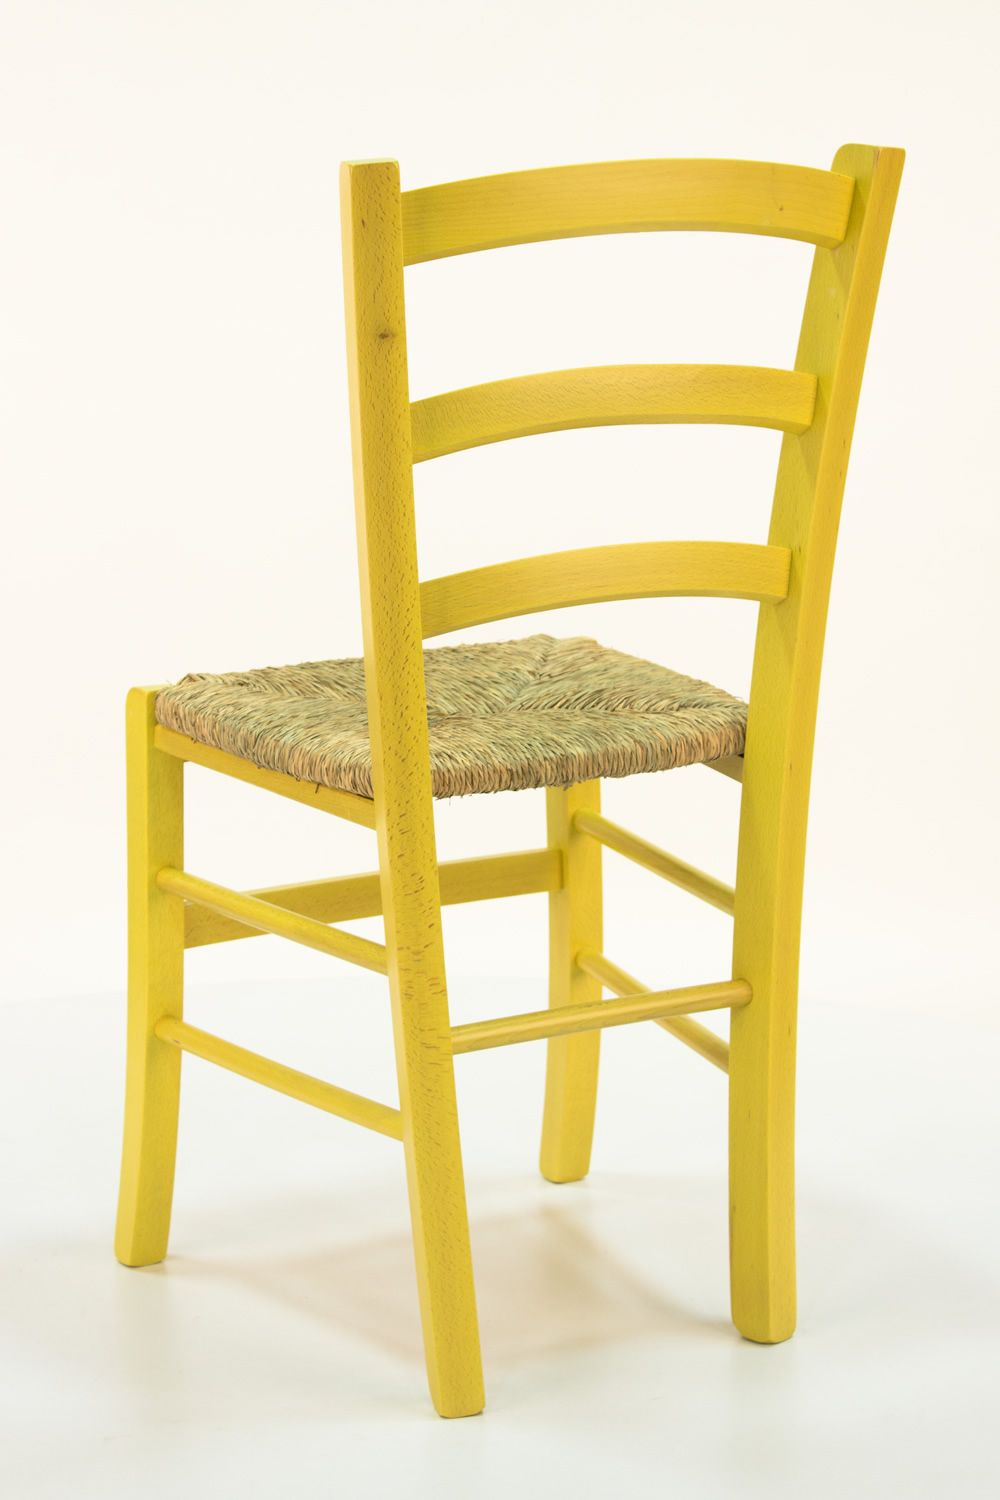 110 For Bars And Restaurants Wooden Chair For Bar And